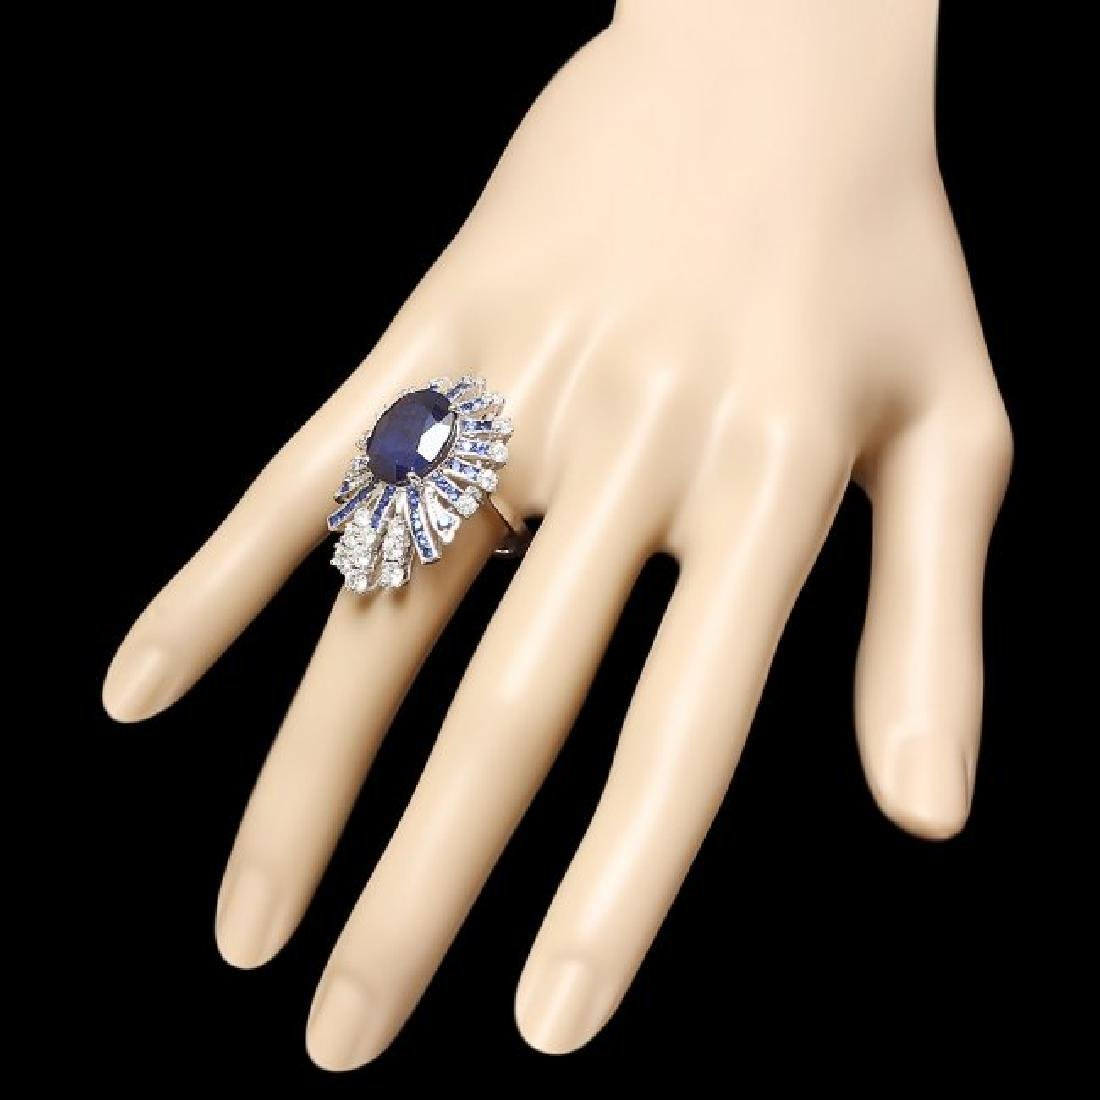 14k White Gold 11ct Sapphire 1.70ct Diamond Ring - 3